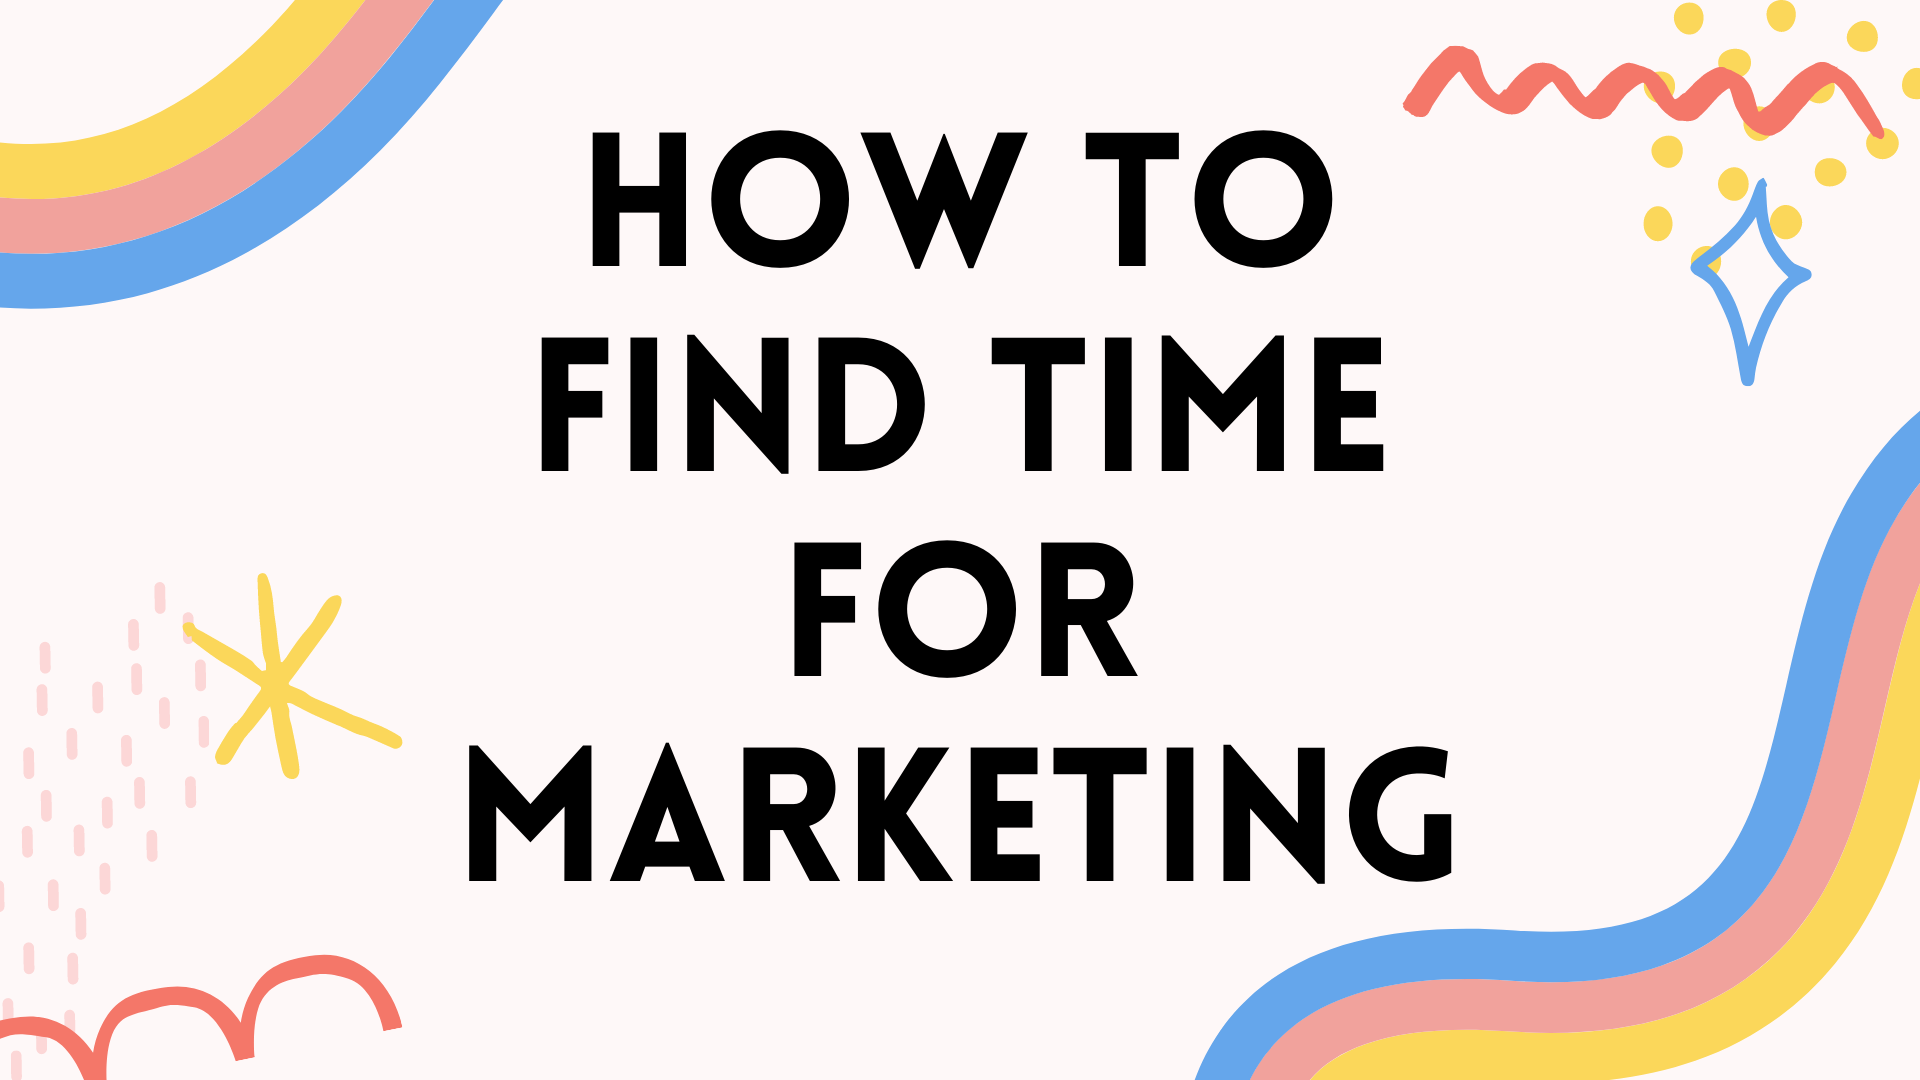 How to Find Time For Marketing